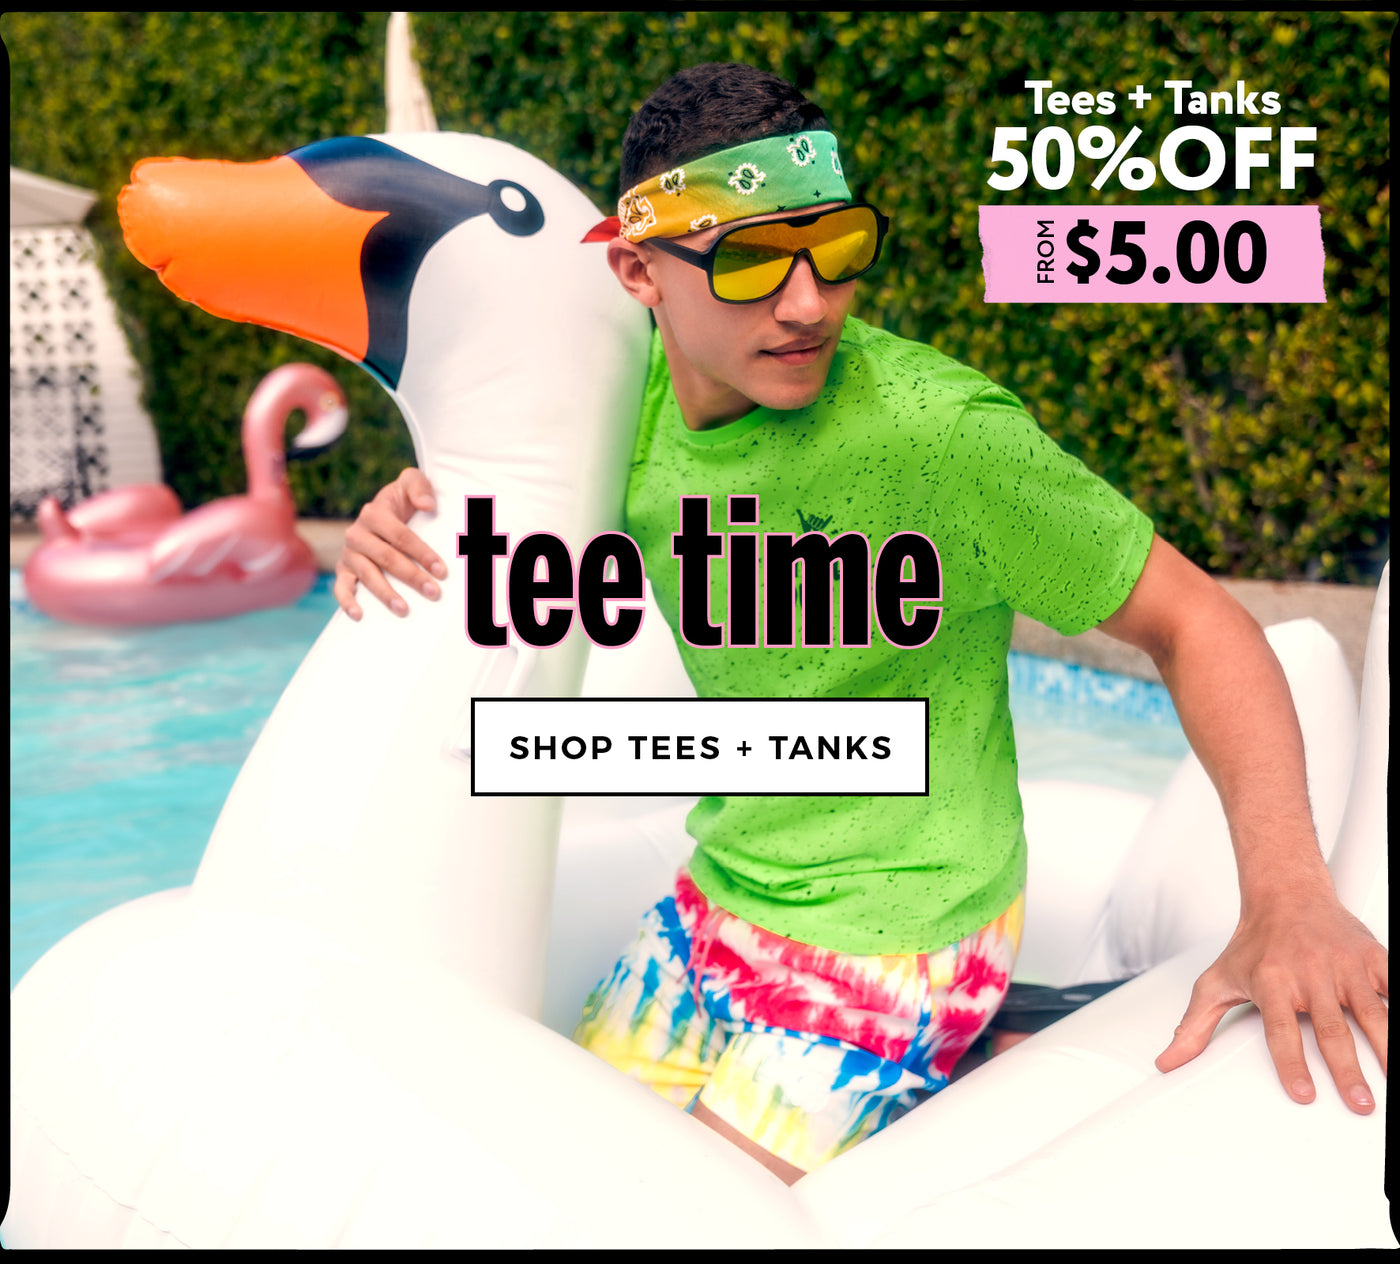 Urban Planet | Tee Time - 50% Off Men's Tees - Shop Tees + Tank